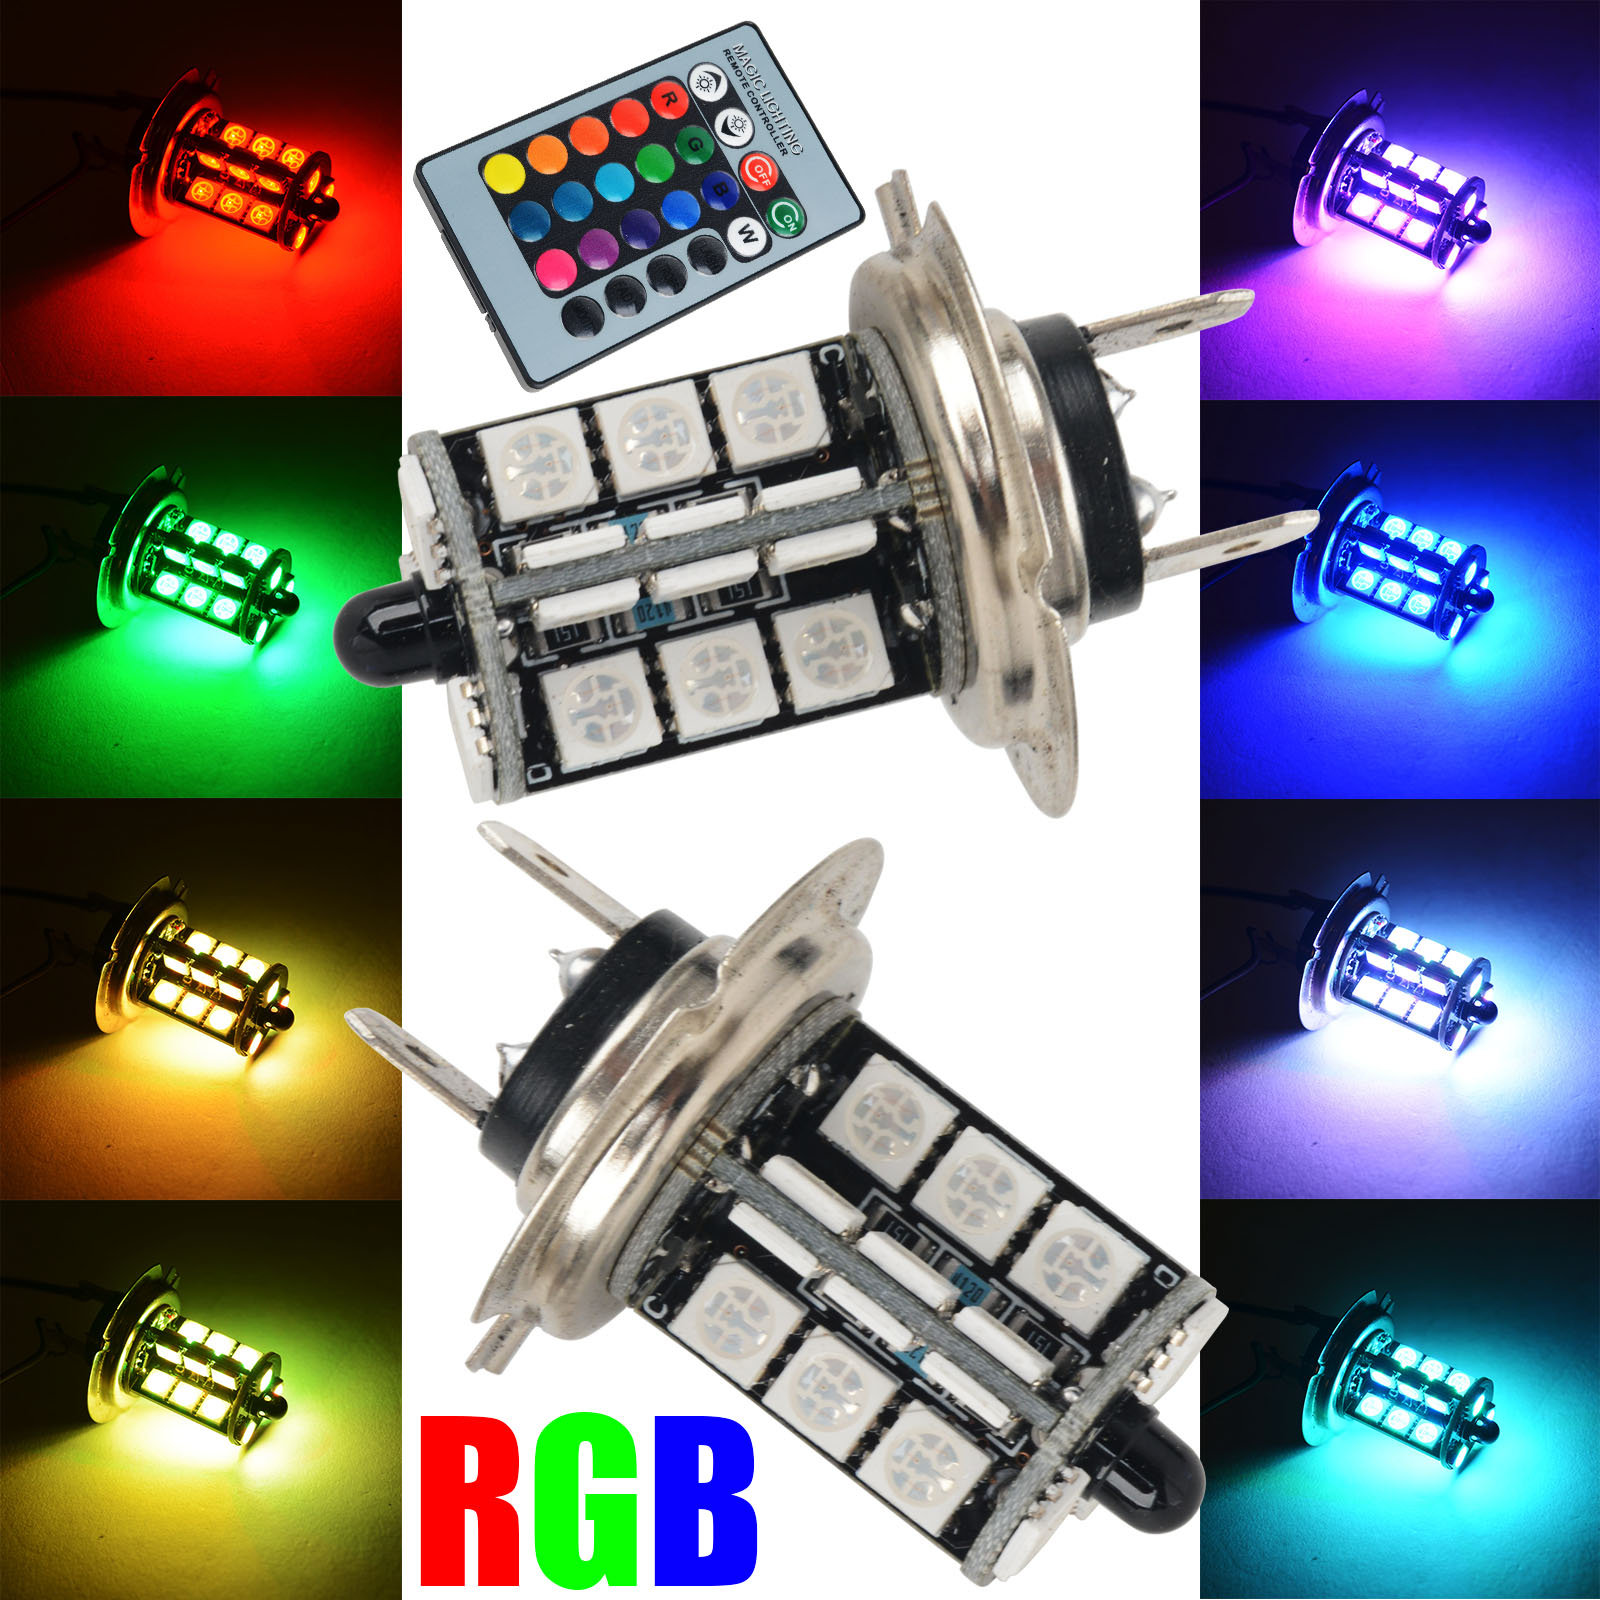 Mayitr 2pcs RGB LED Car Headlight H7 5050 27 SMD LED Decoration DRL Fog Light Head Lamp Bulbs +  Wireless Control Remote DC 12V литой диск replica legeartis concept opl513 7 5x18 5x115 d70 1 et41 silver